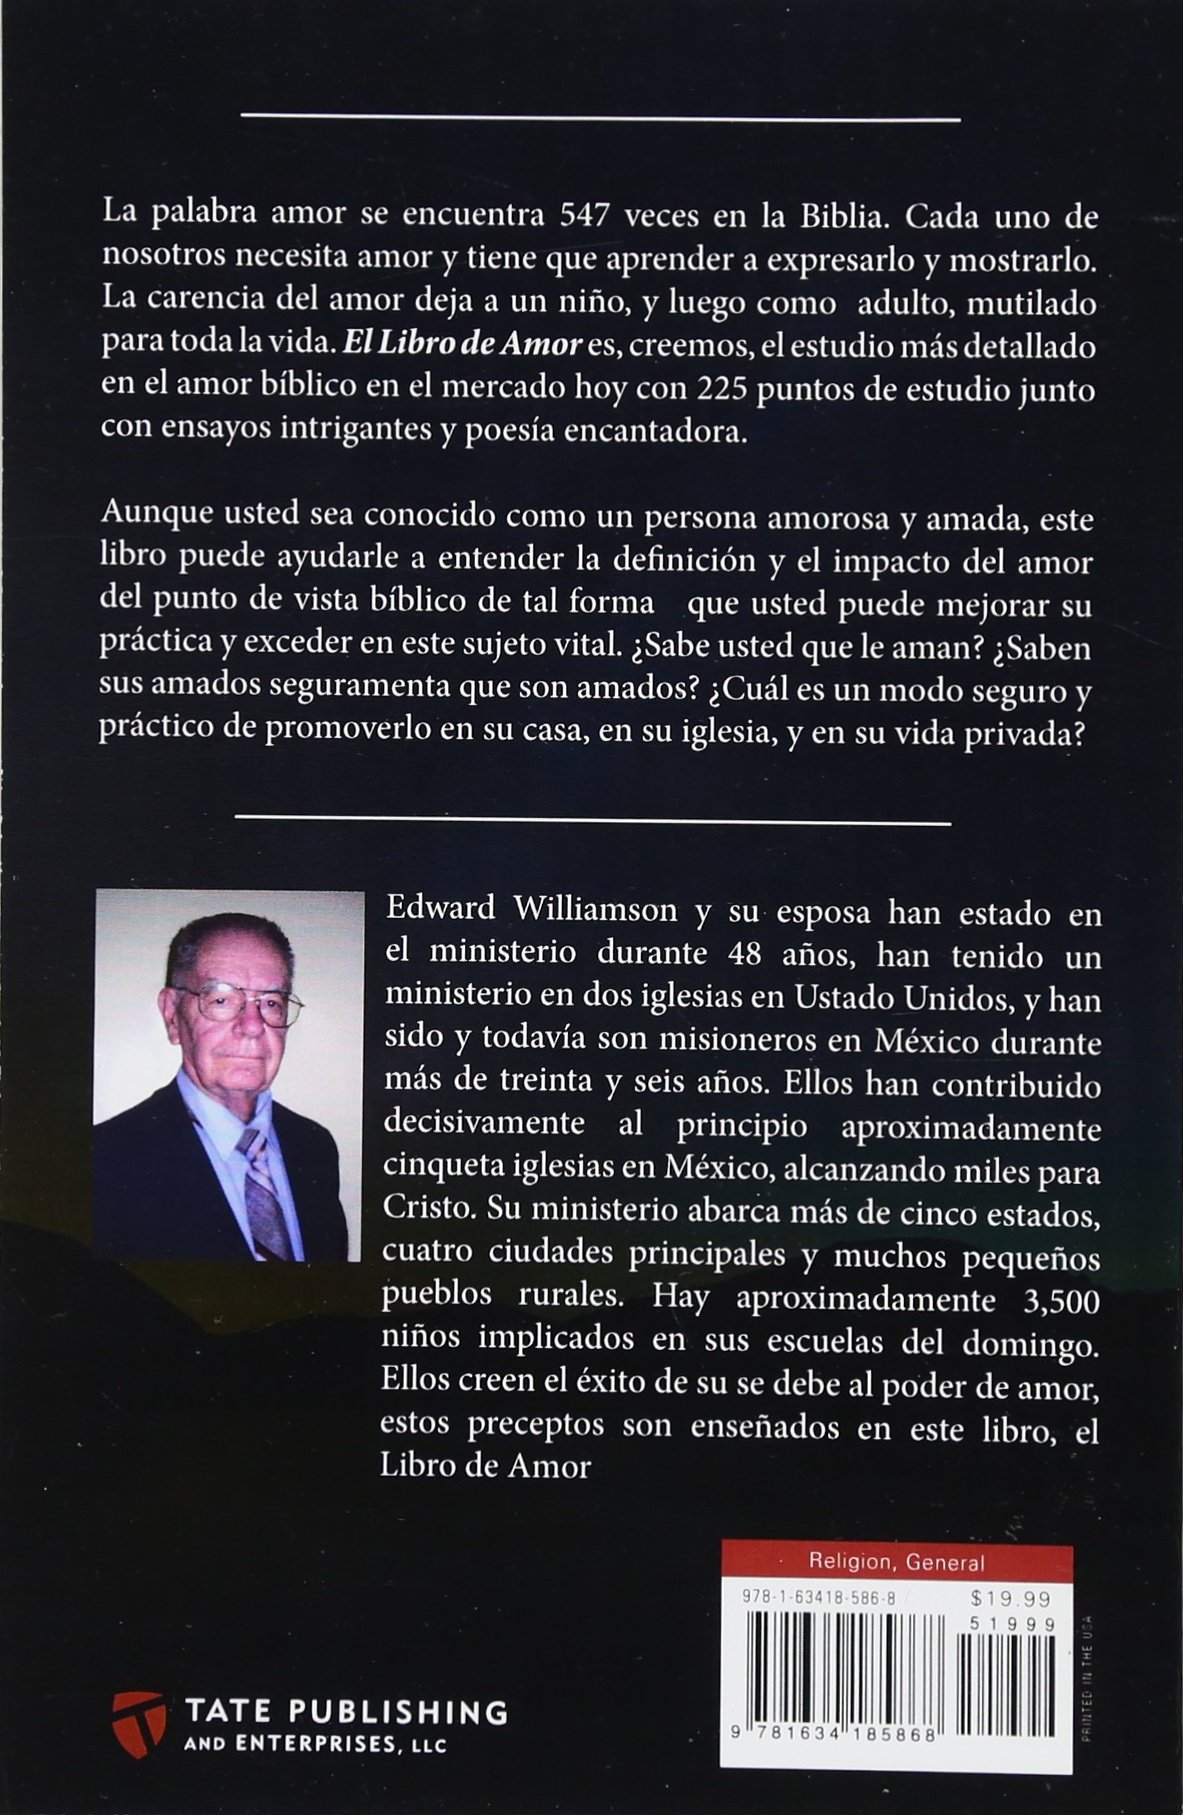 El Libro de Amor (Spanish Edition): Ed Williamson: 9781634185868: Amazon.com: Books